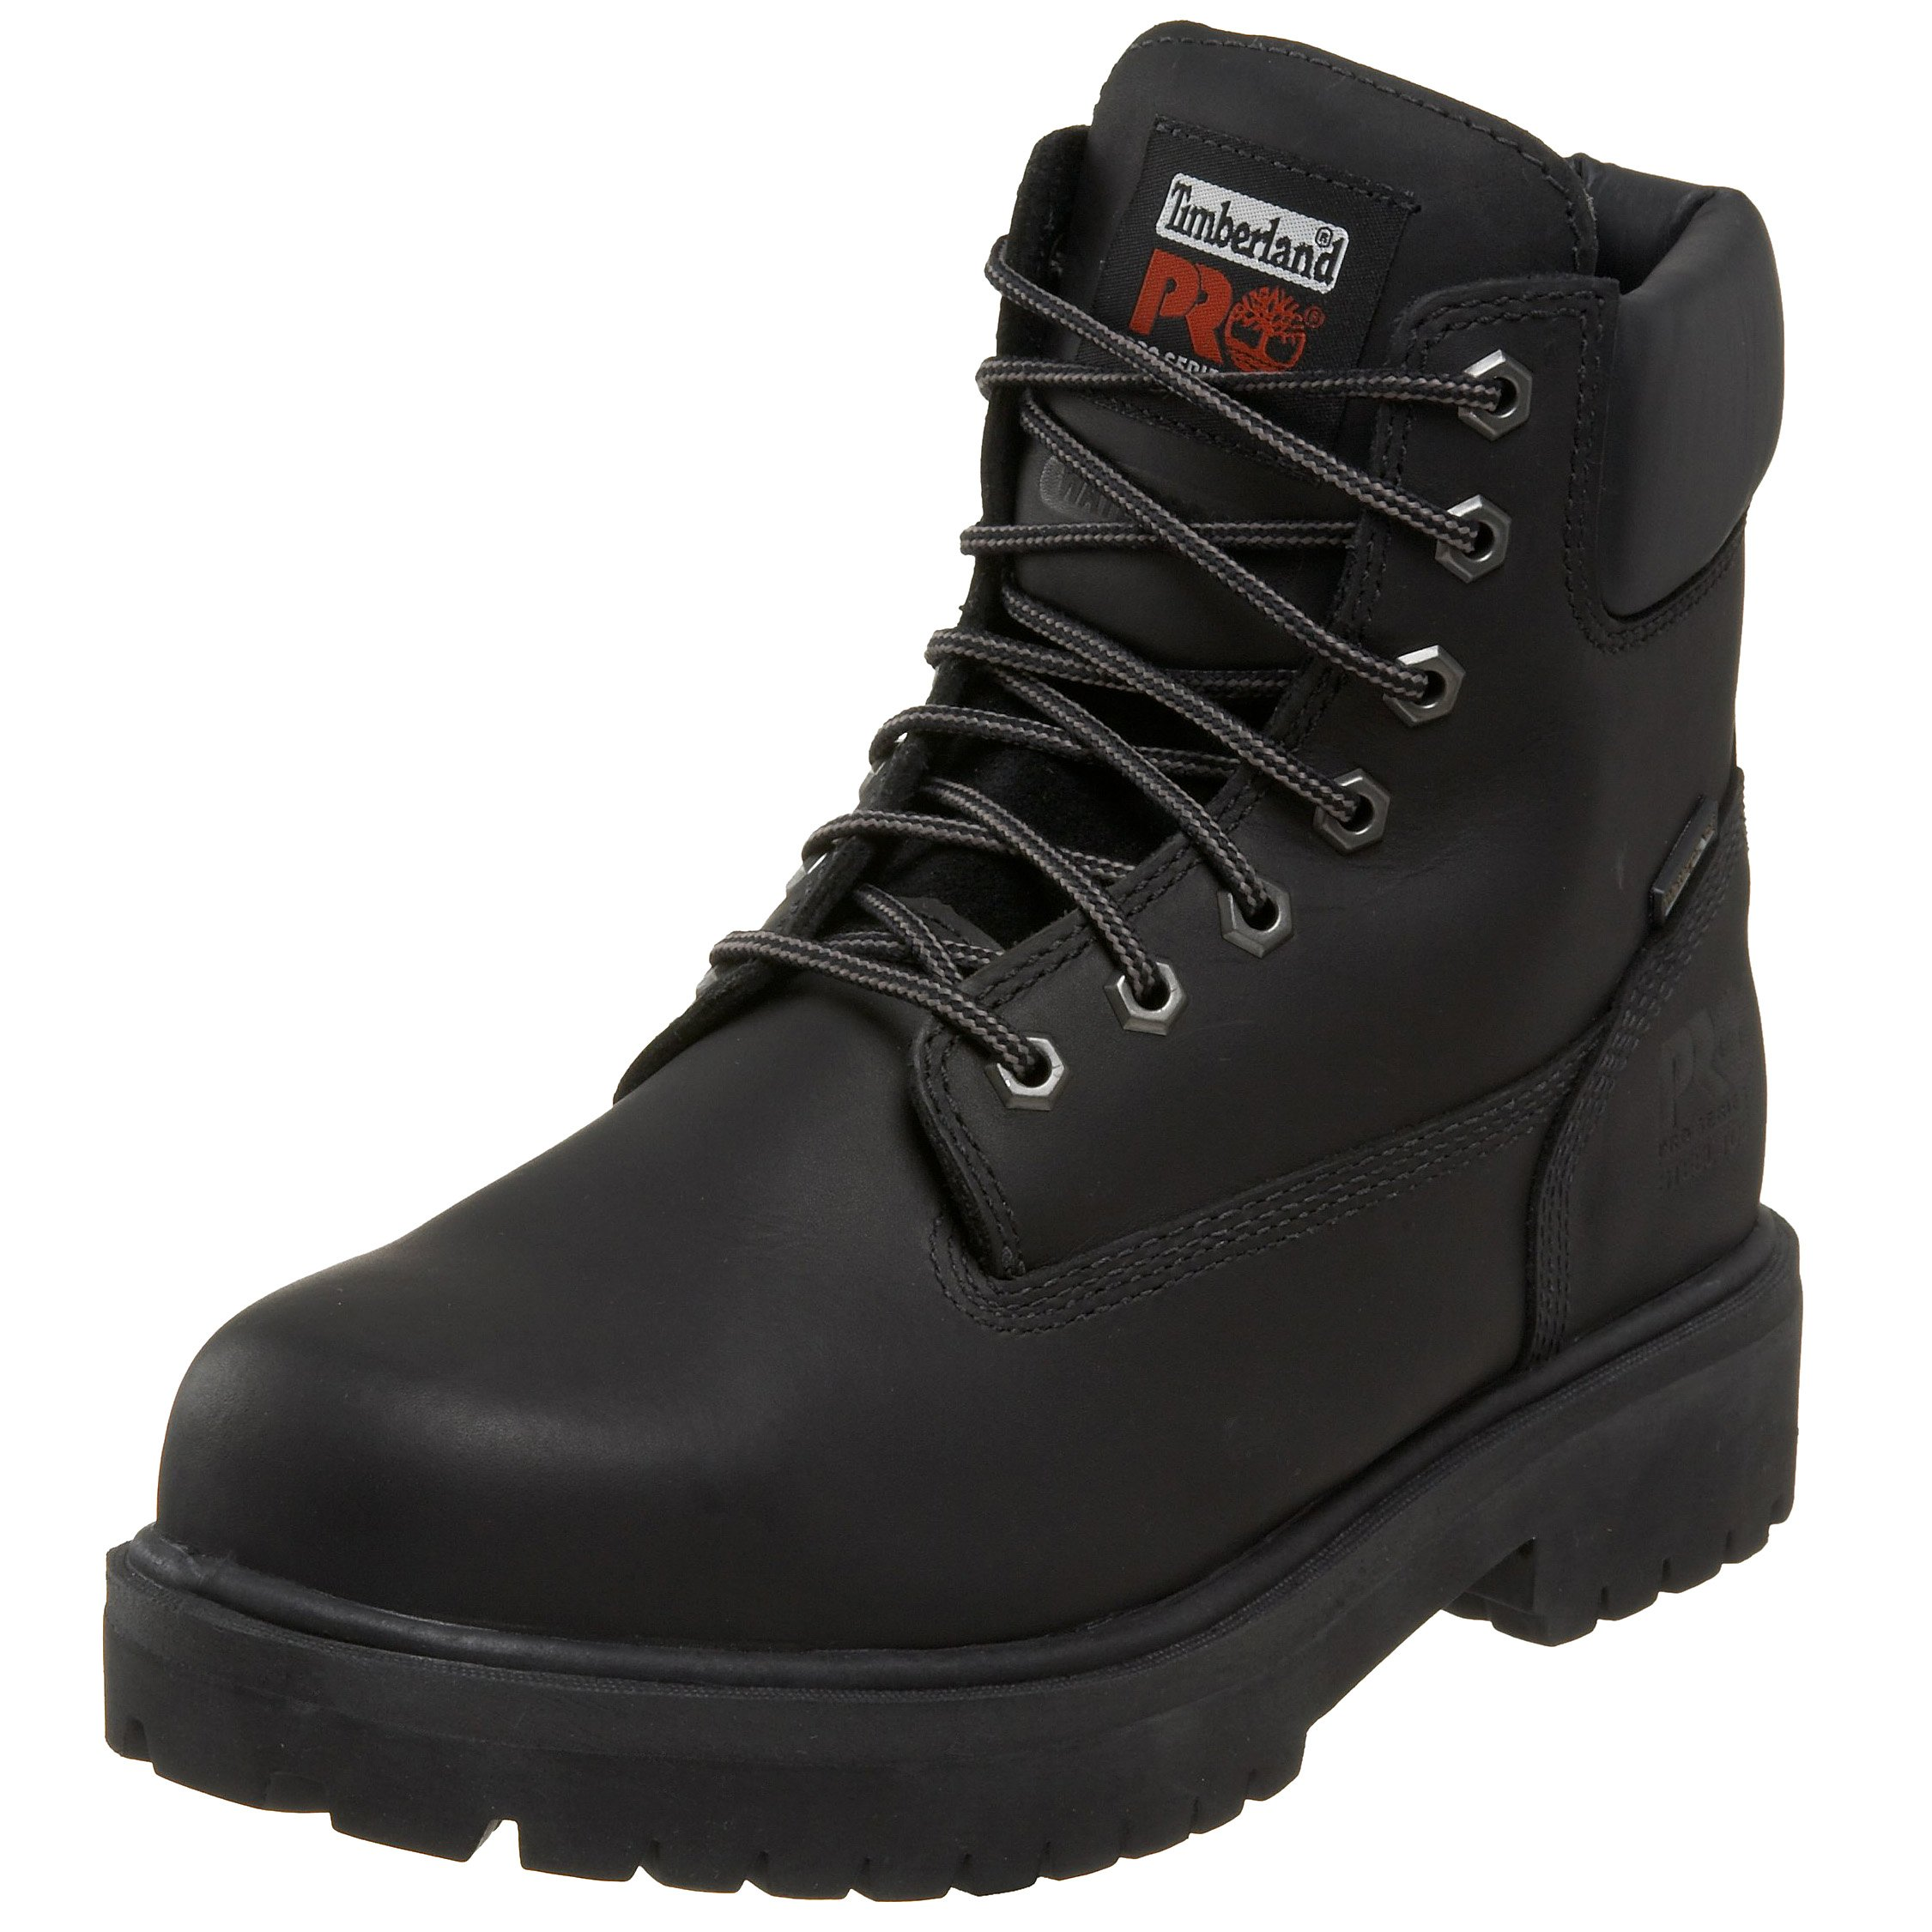 Timberland PRO Men's 26038 Direct Attach 6'' Steel Toe Boot,Black,7.5 M by Timberland PRO